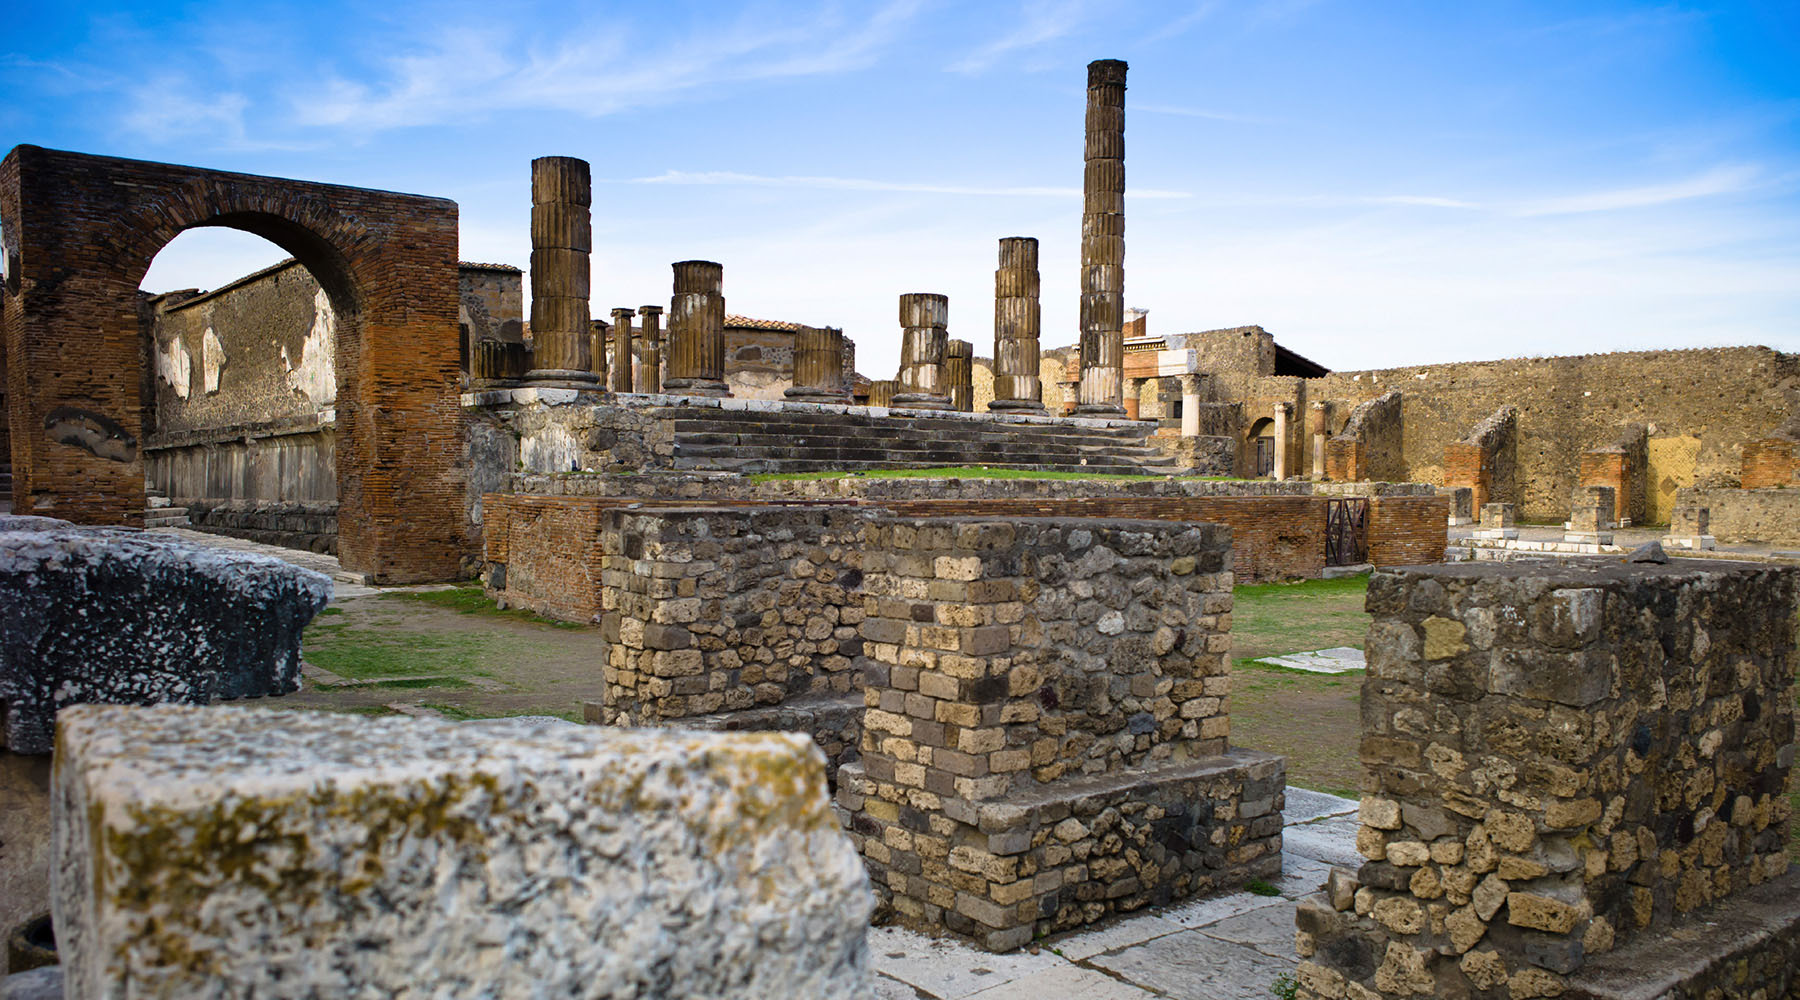 While exploring the Greek Isles and Italy, enter one of the most remarkable archaeological sites ever unearthed—the lost city of Pompeii.